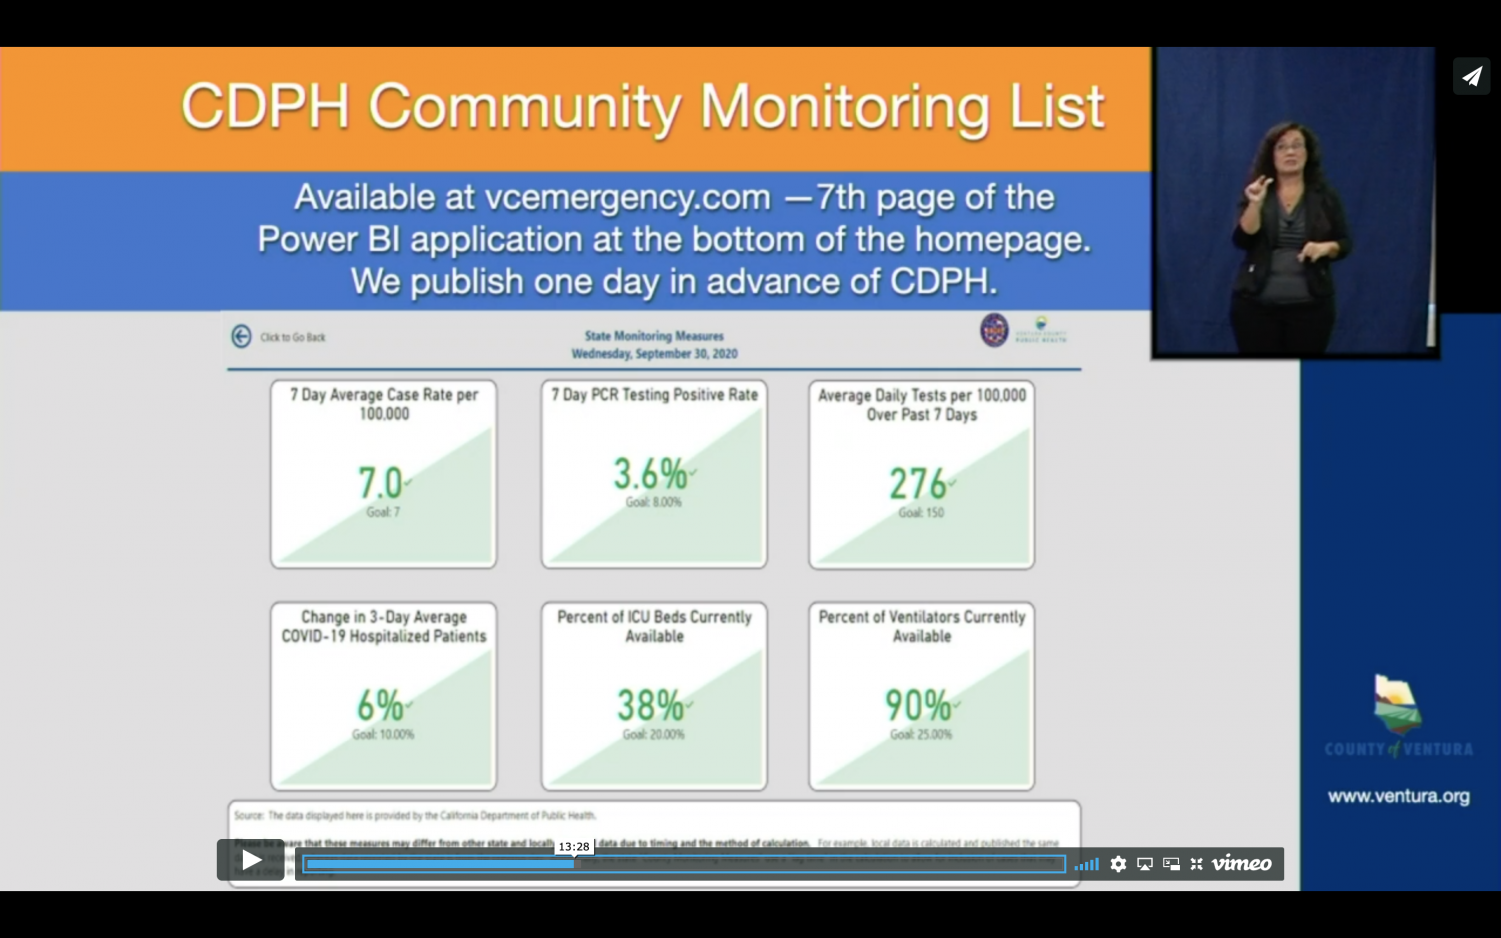 Rigo Vargas, Director for the Ventura County Public Health Department, presents the CDPH Community Monitoring List that shows Ventura County's metric data.